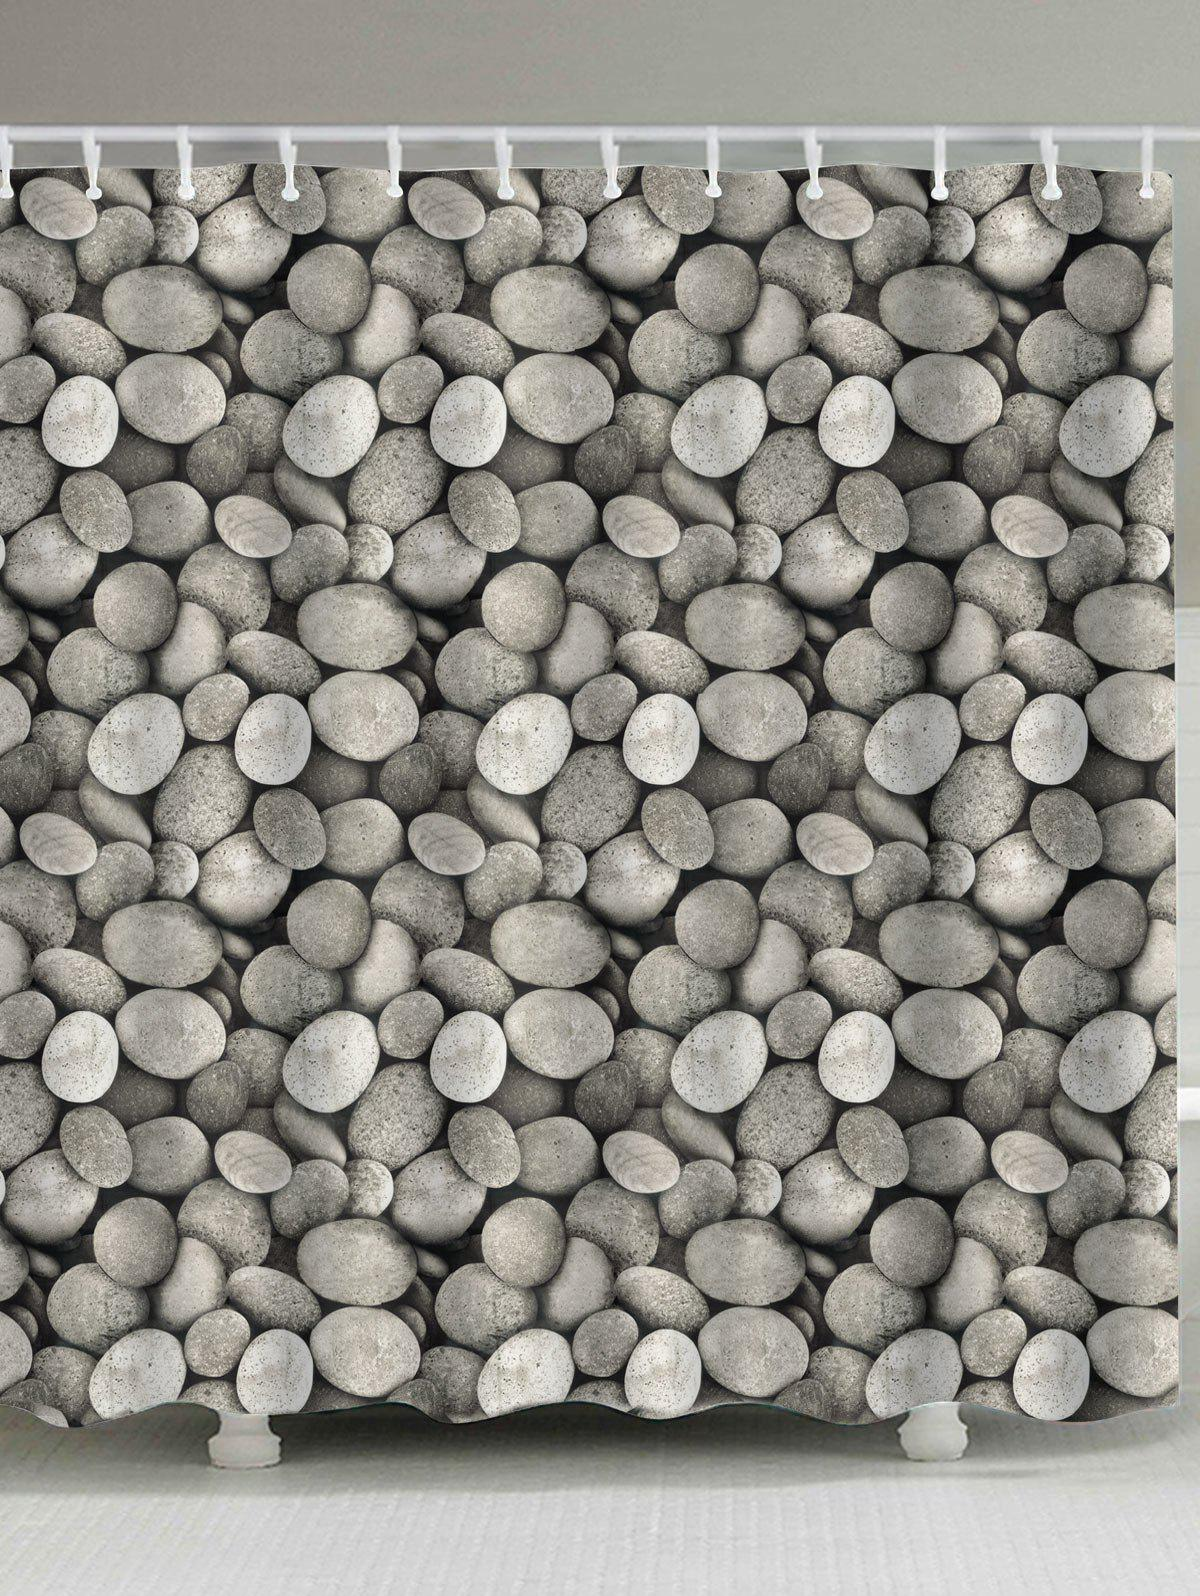 Polyester Fabric Cobblestone Print Shower Curtain - GRAY W71 INCH * L79 INCH